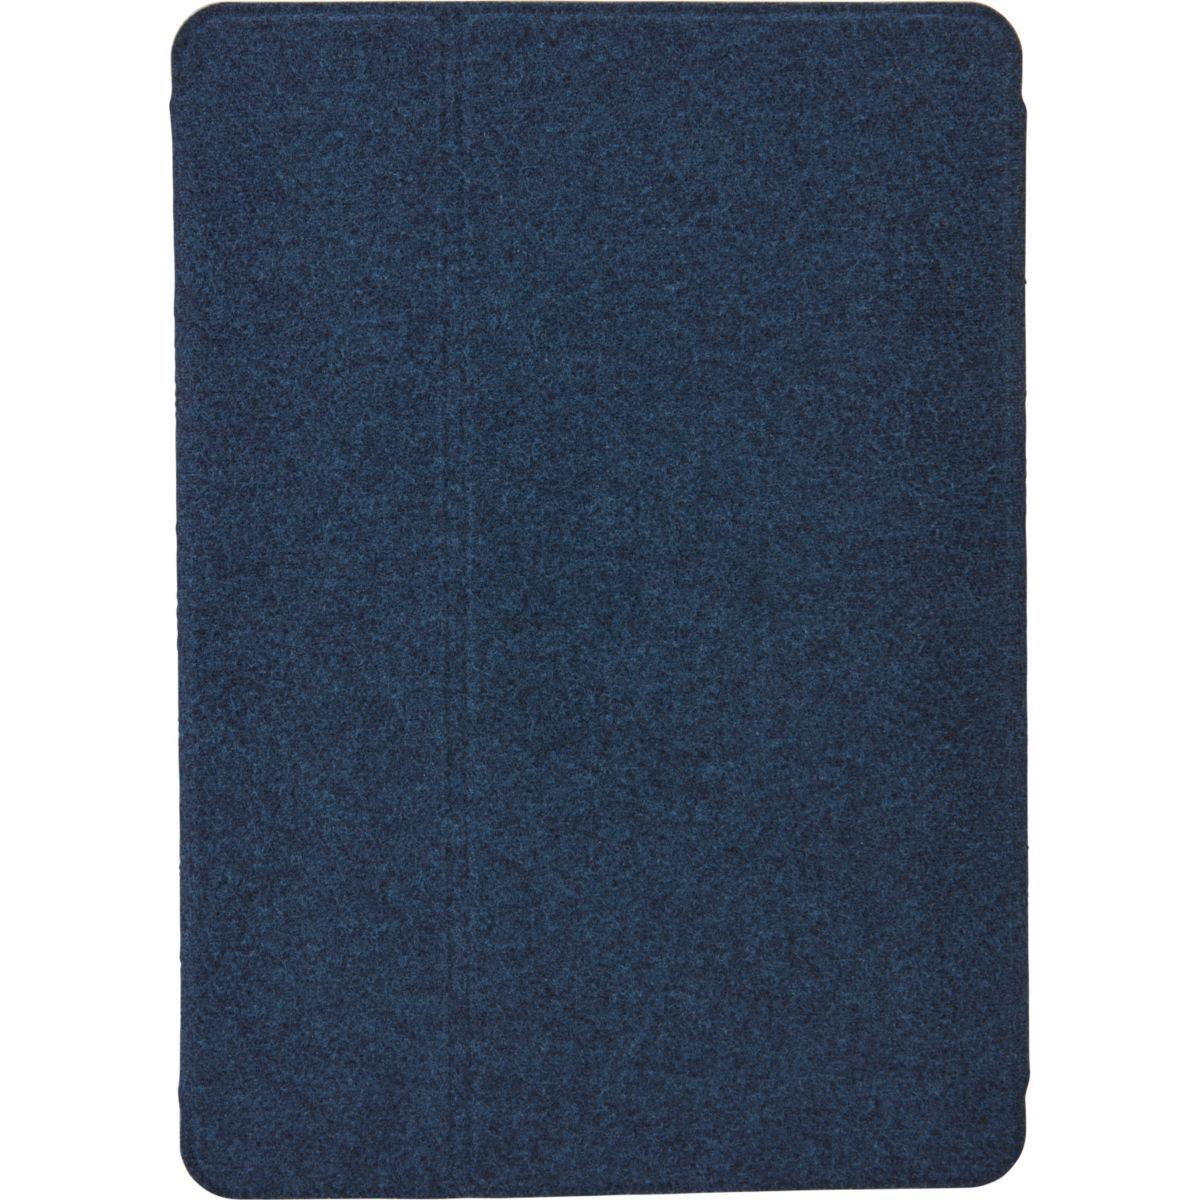 Folio caselogic ipad pro 9.7 bleu ultra slim - 20% de remise immédiate avec le code : cool20 (photo)